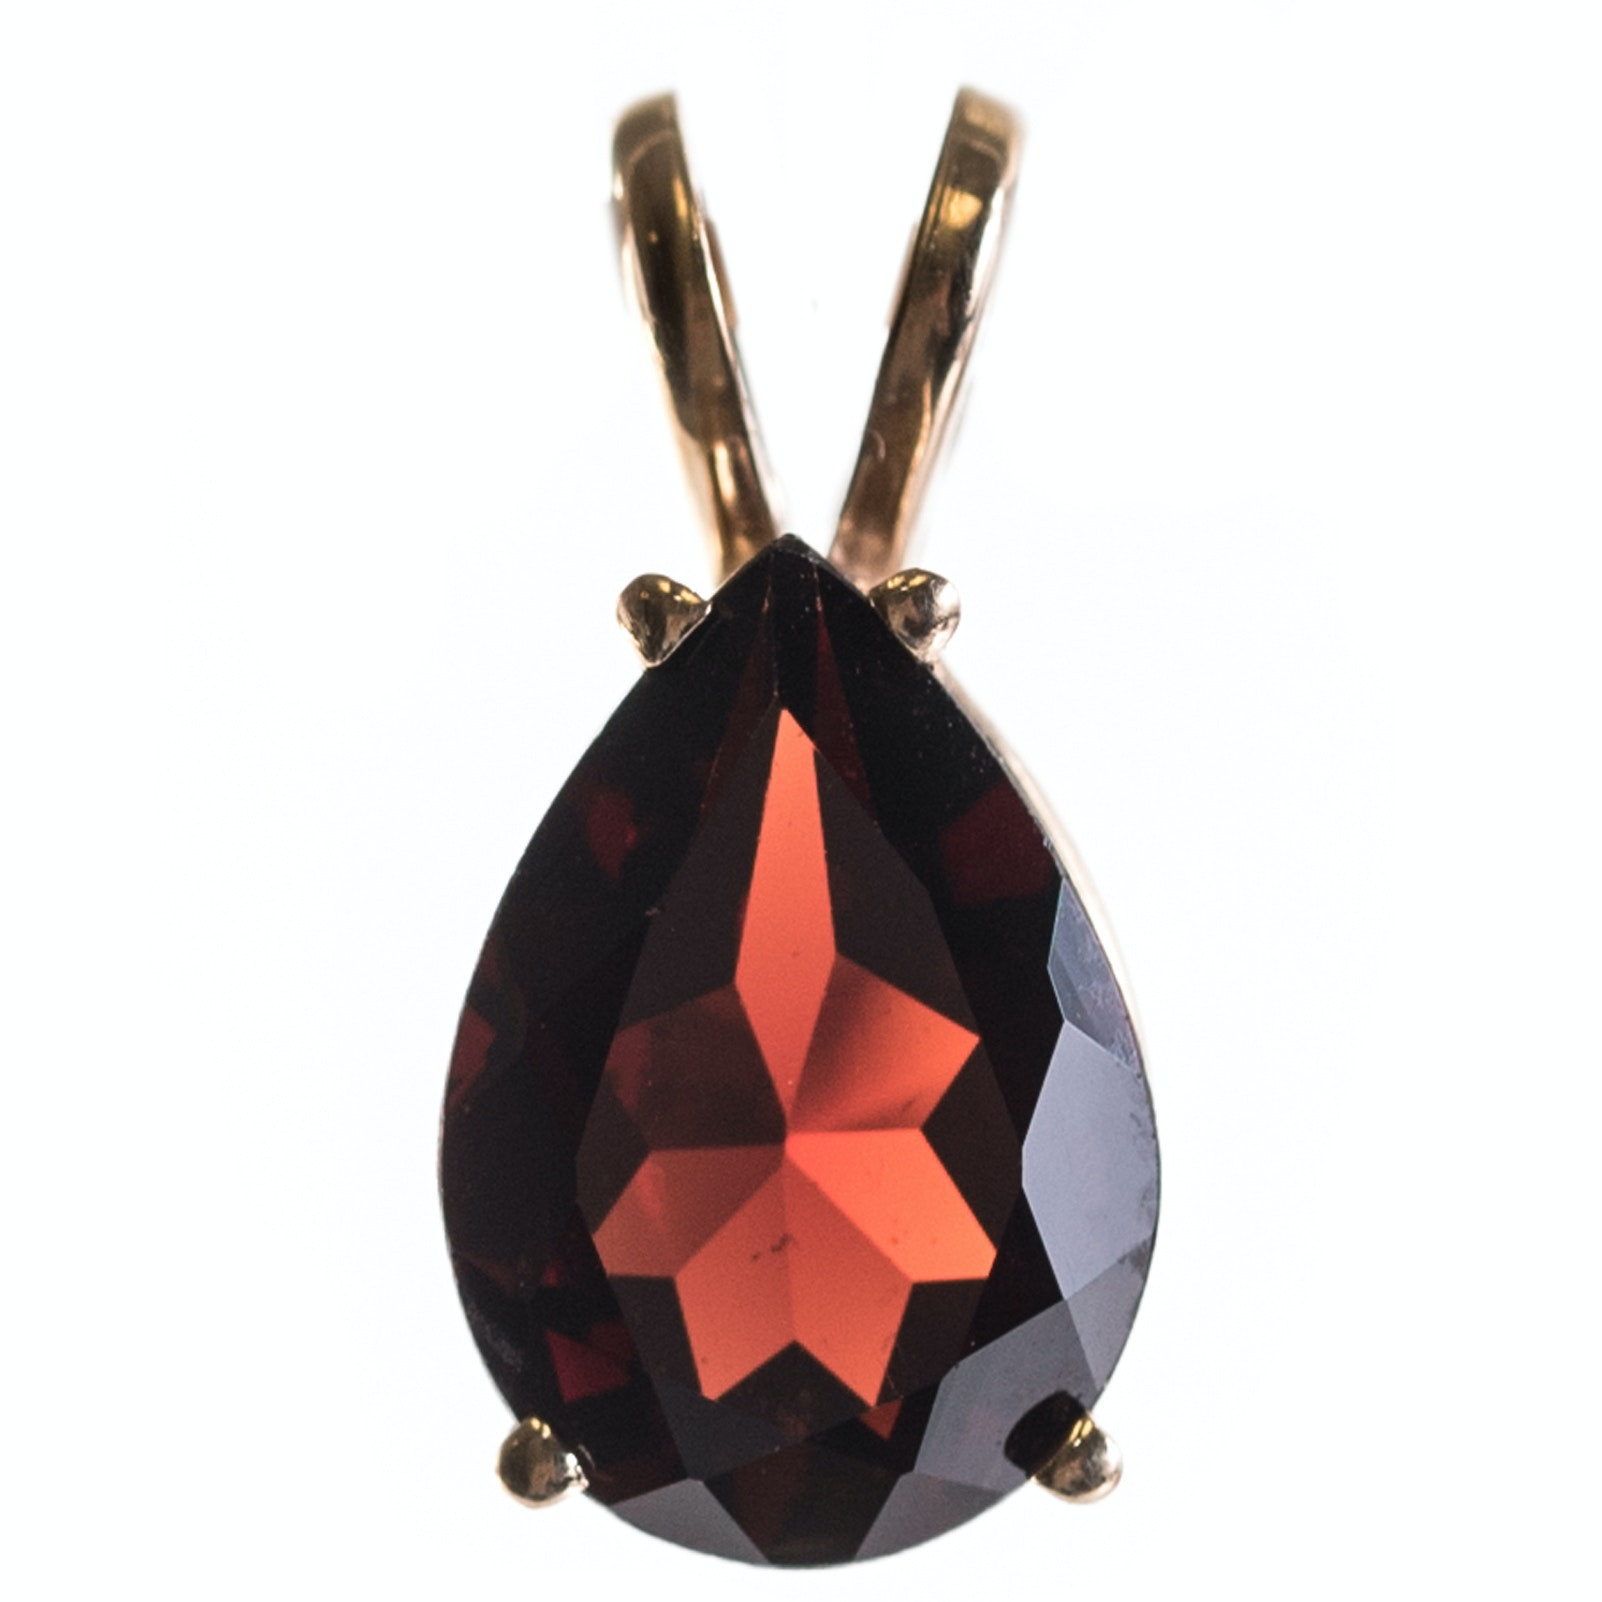 Clyde Duneier 14K Yellow Gold and 2.15 CT Garnet Pendant